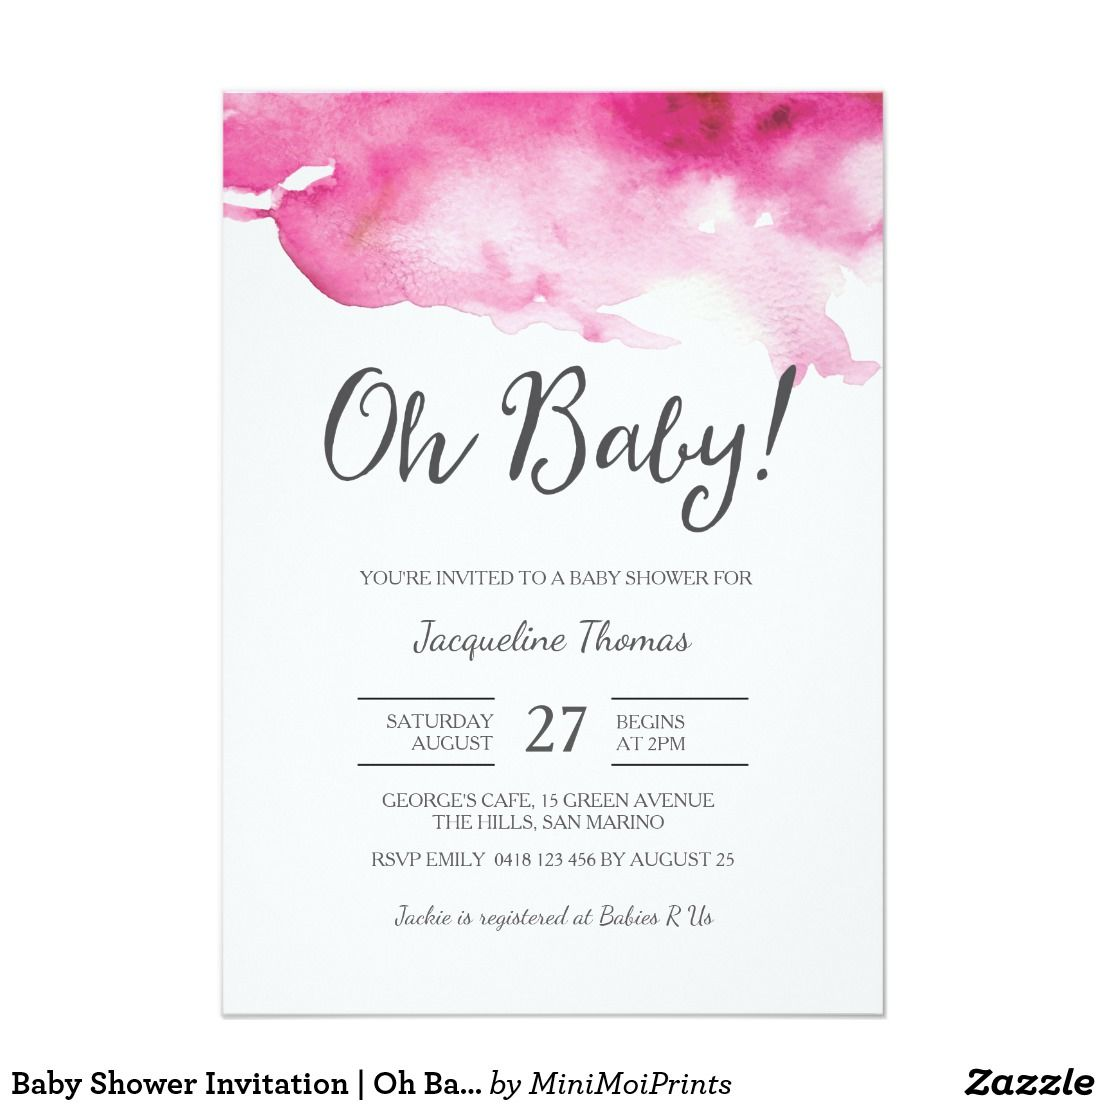 Baby Shower Invitation | Oh Baby Pink | Shower invitations